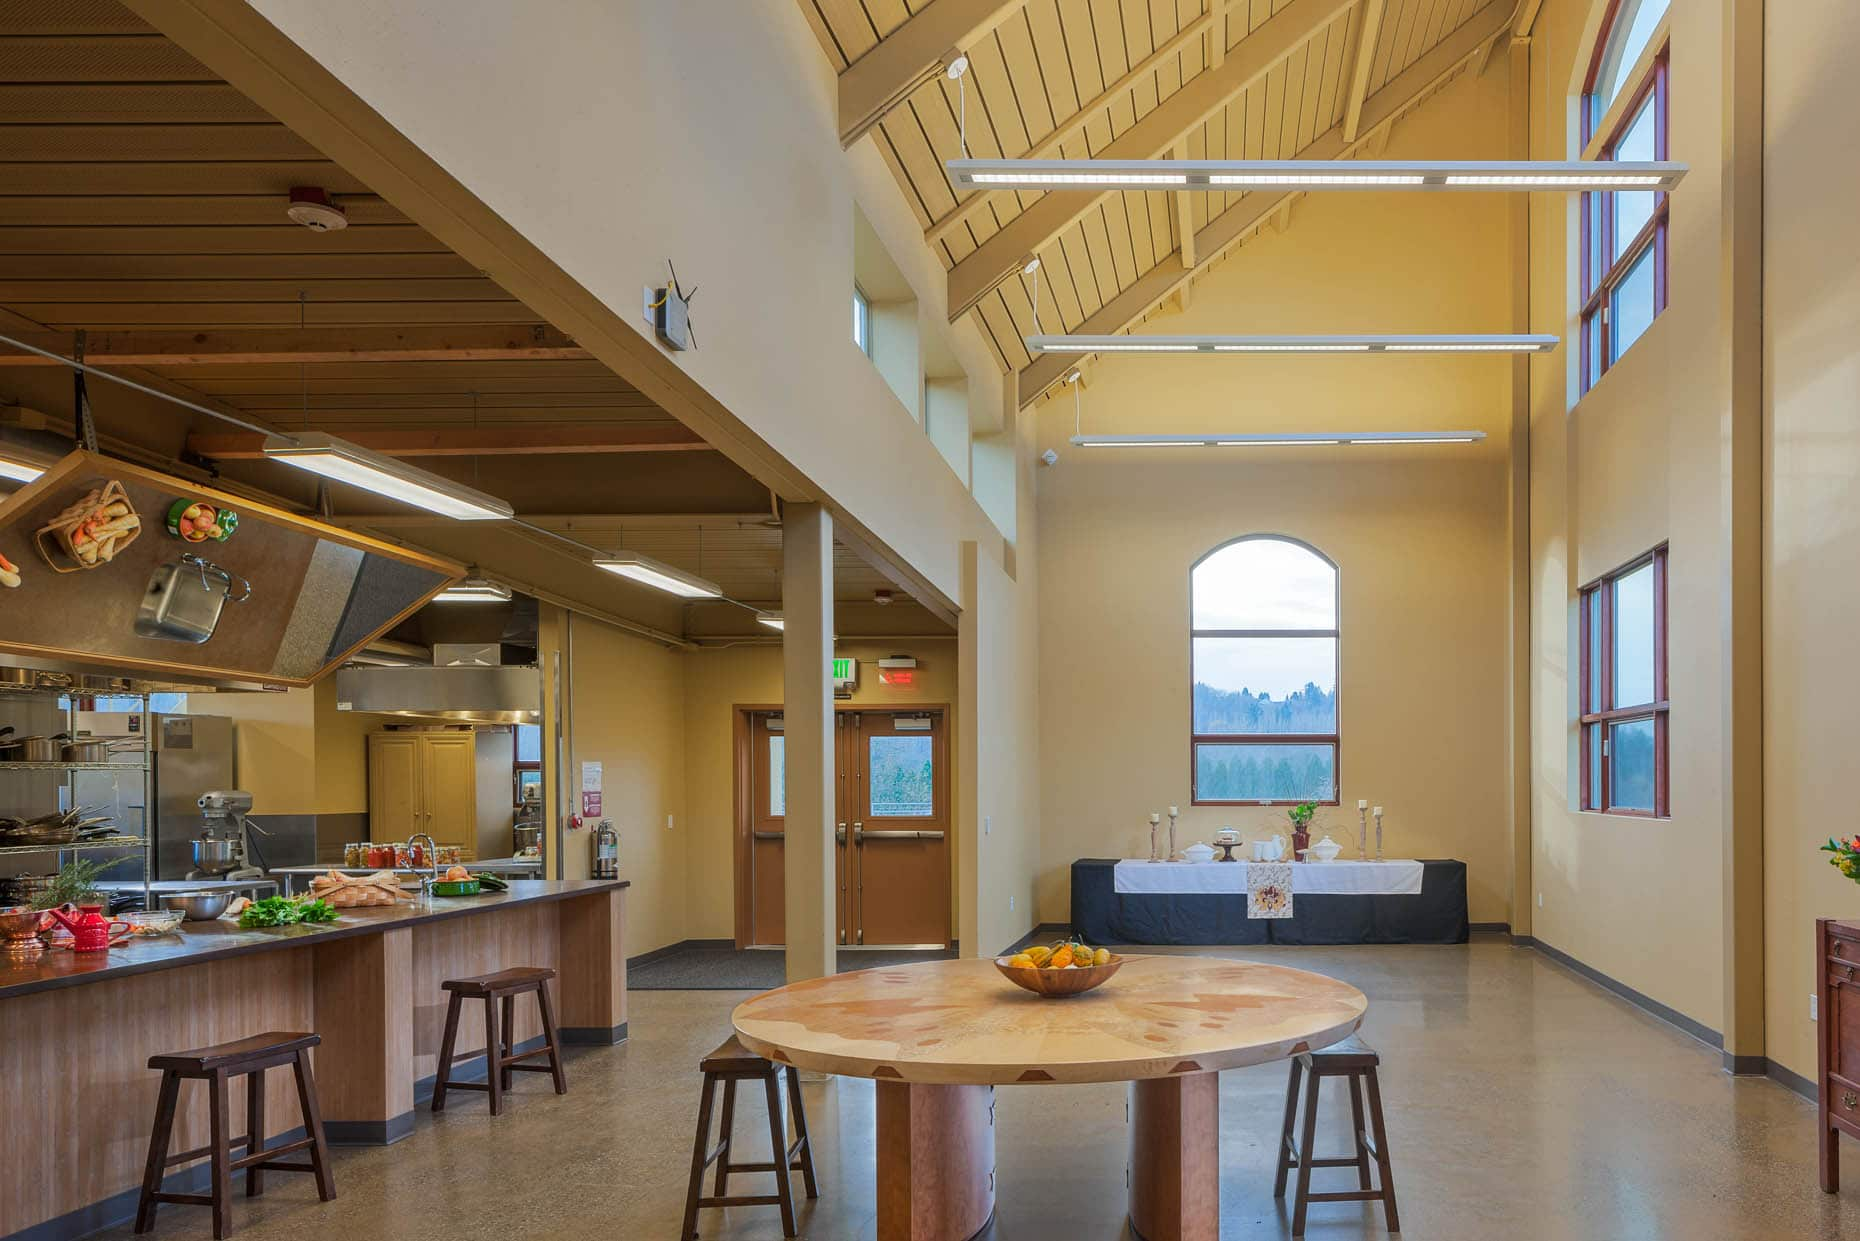 21Acres Kitchen and Event Space